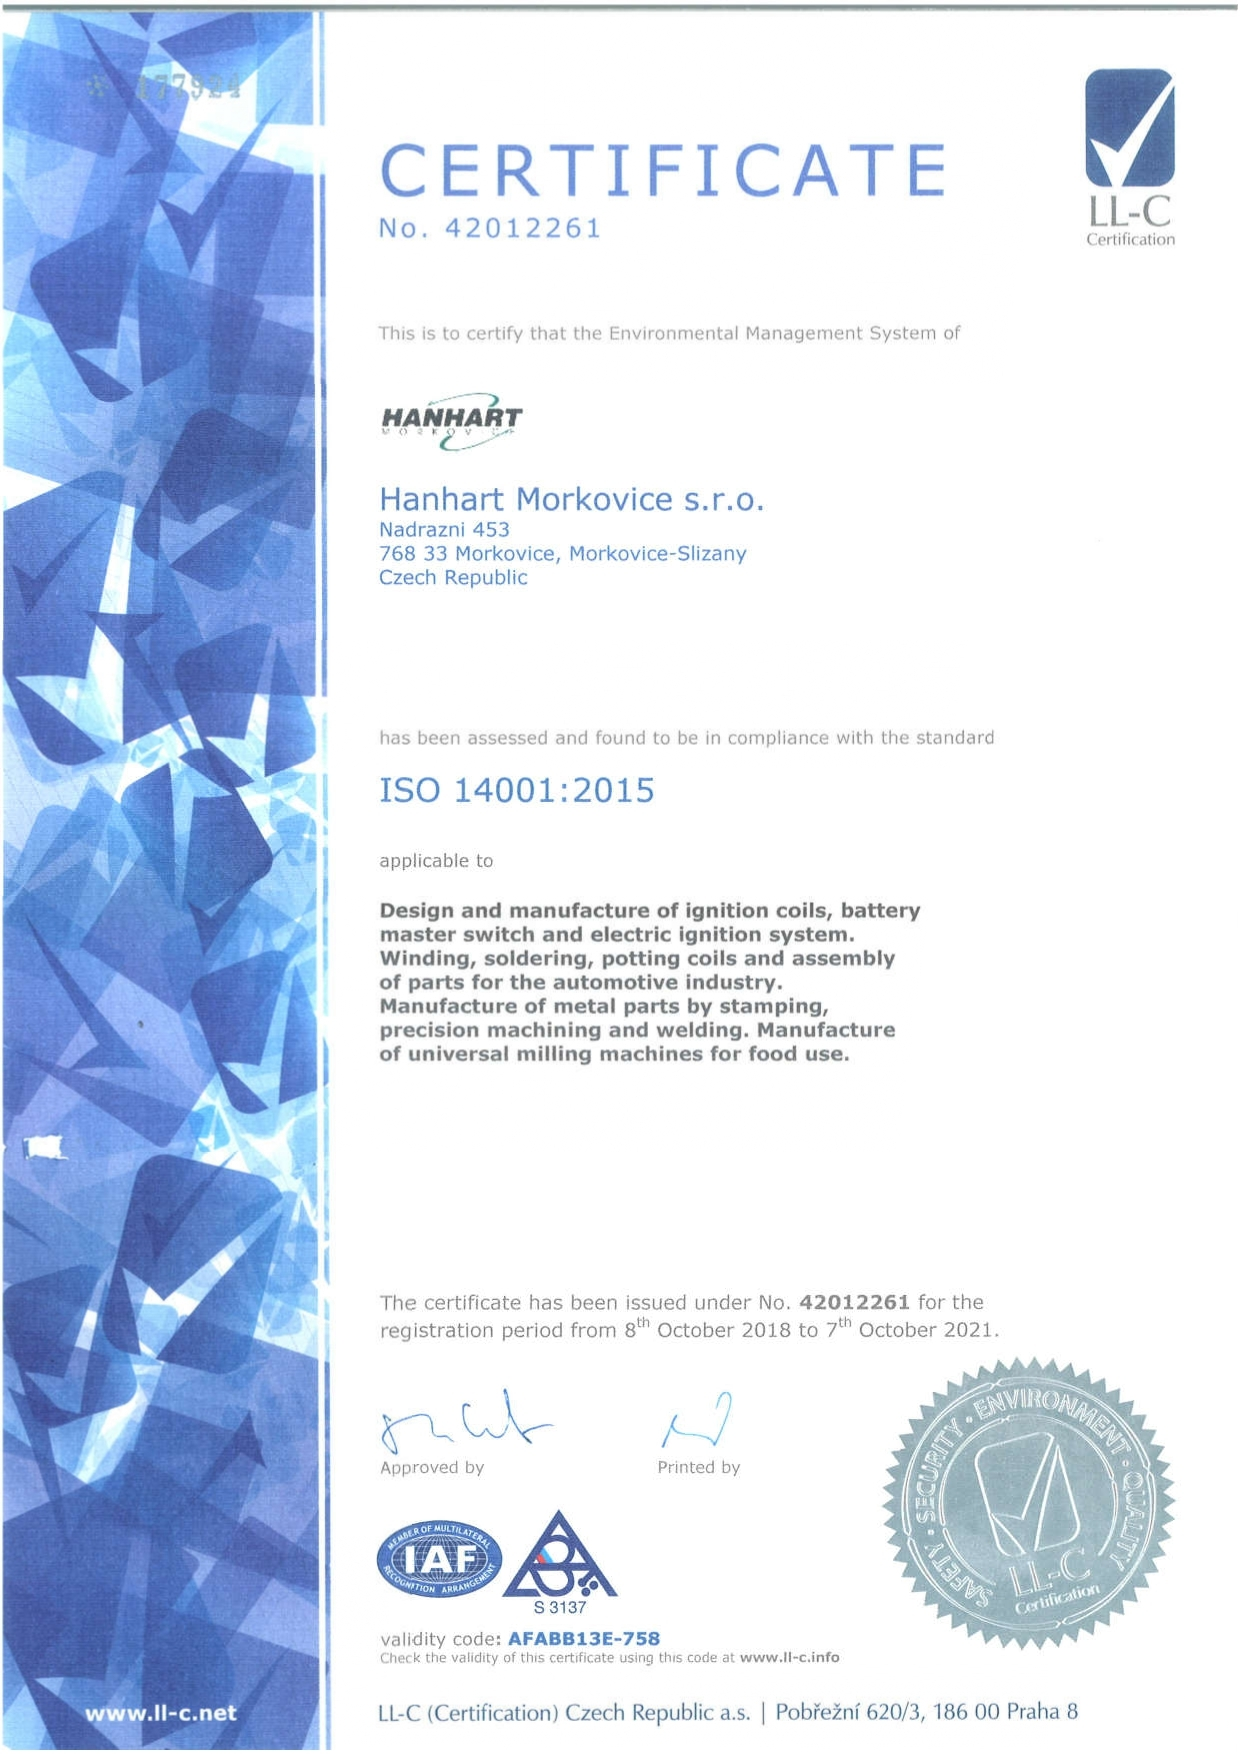 HANHART Morkovice - Certification - 2